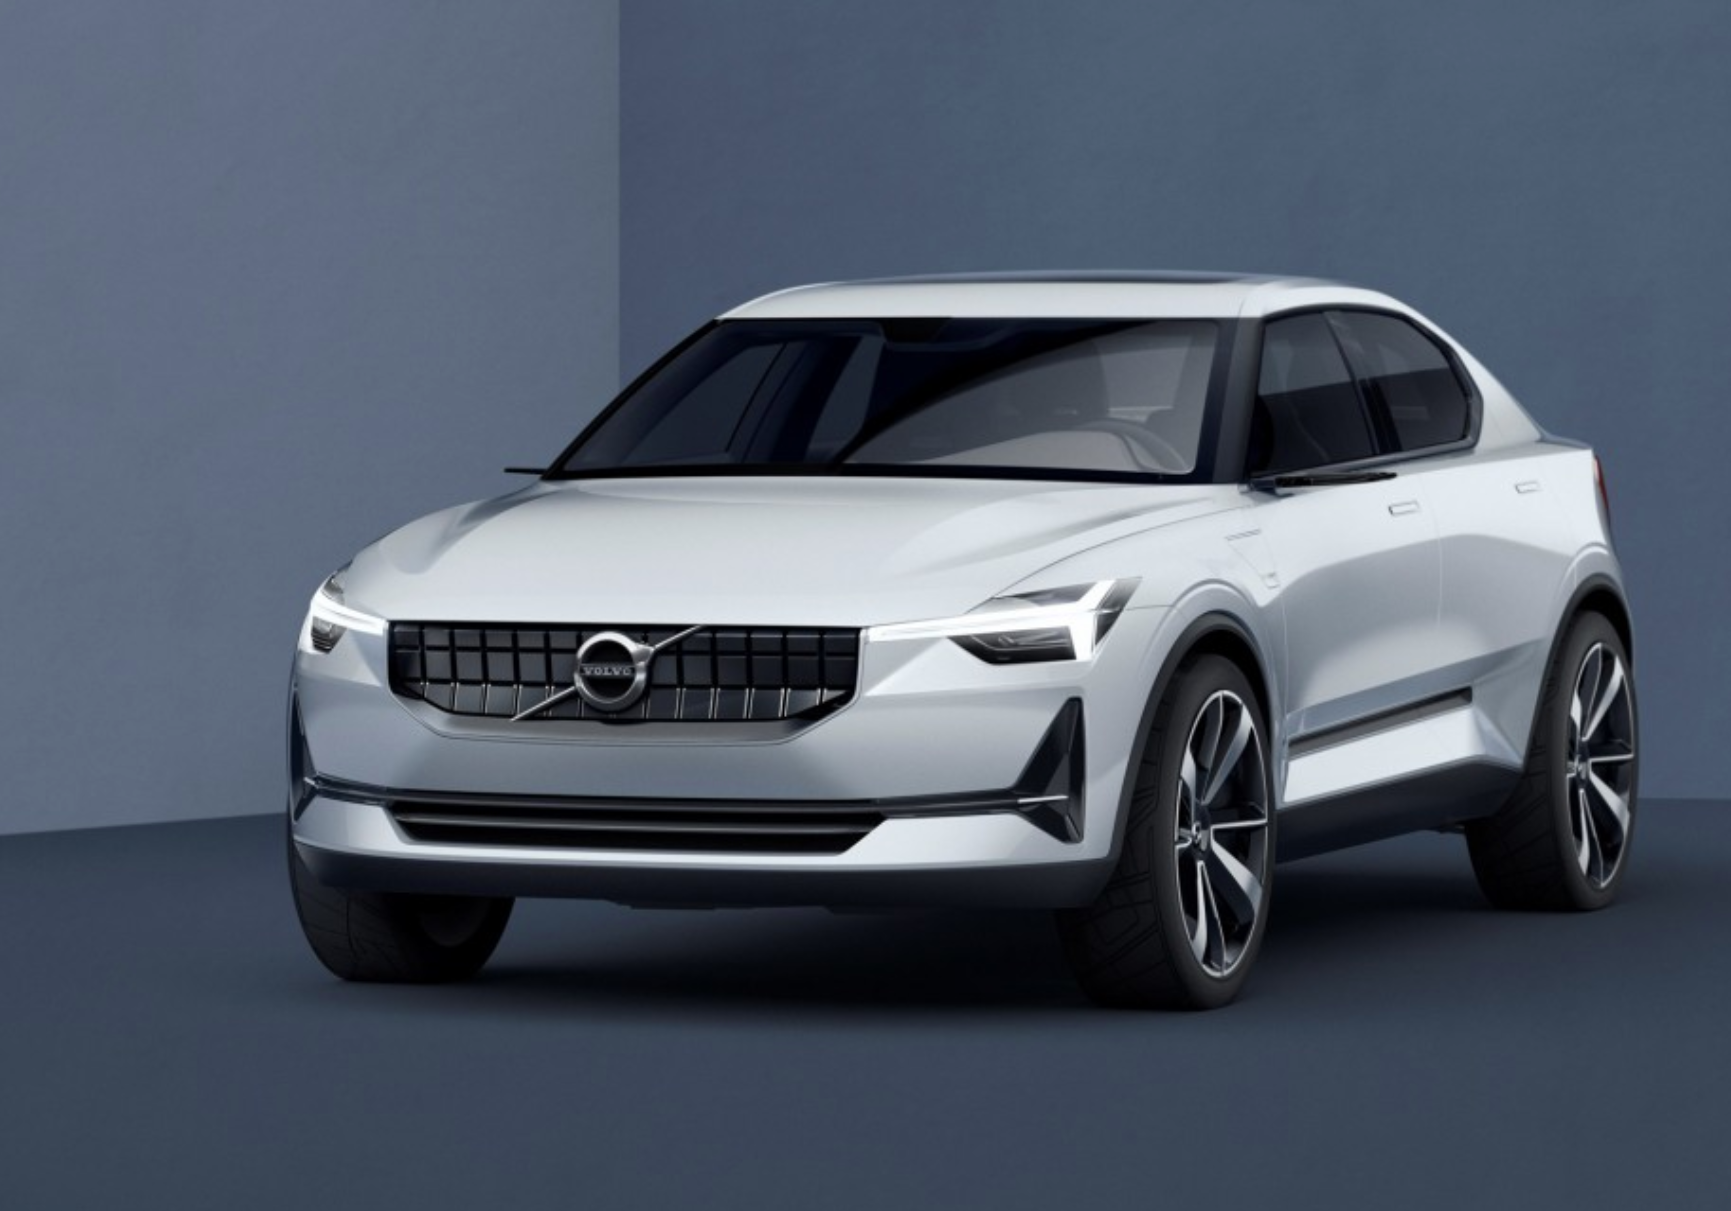 62 All New Volvo Electric Vehicles 2020 Wallpaper by Volvo Electric Vehicles 2020